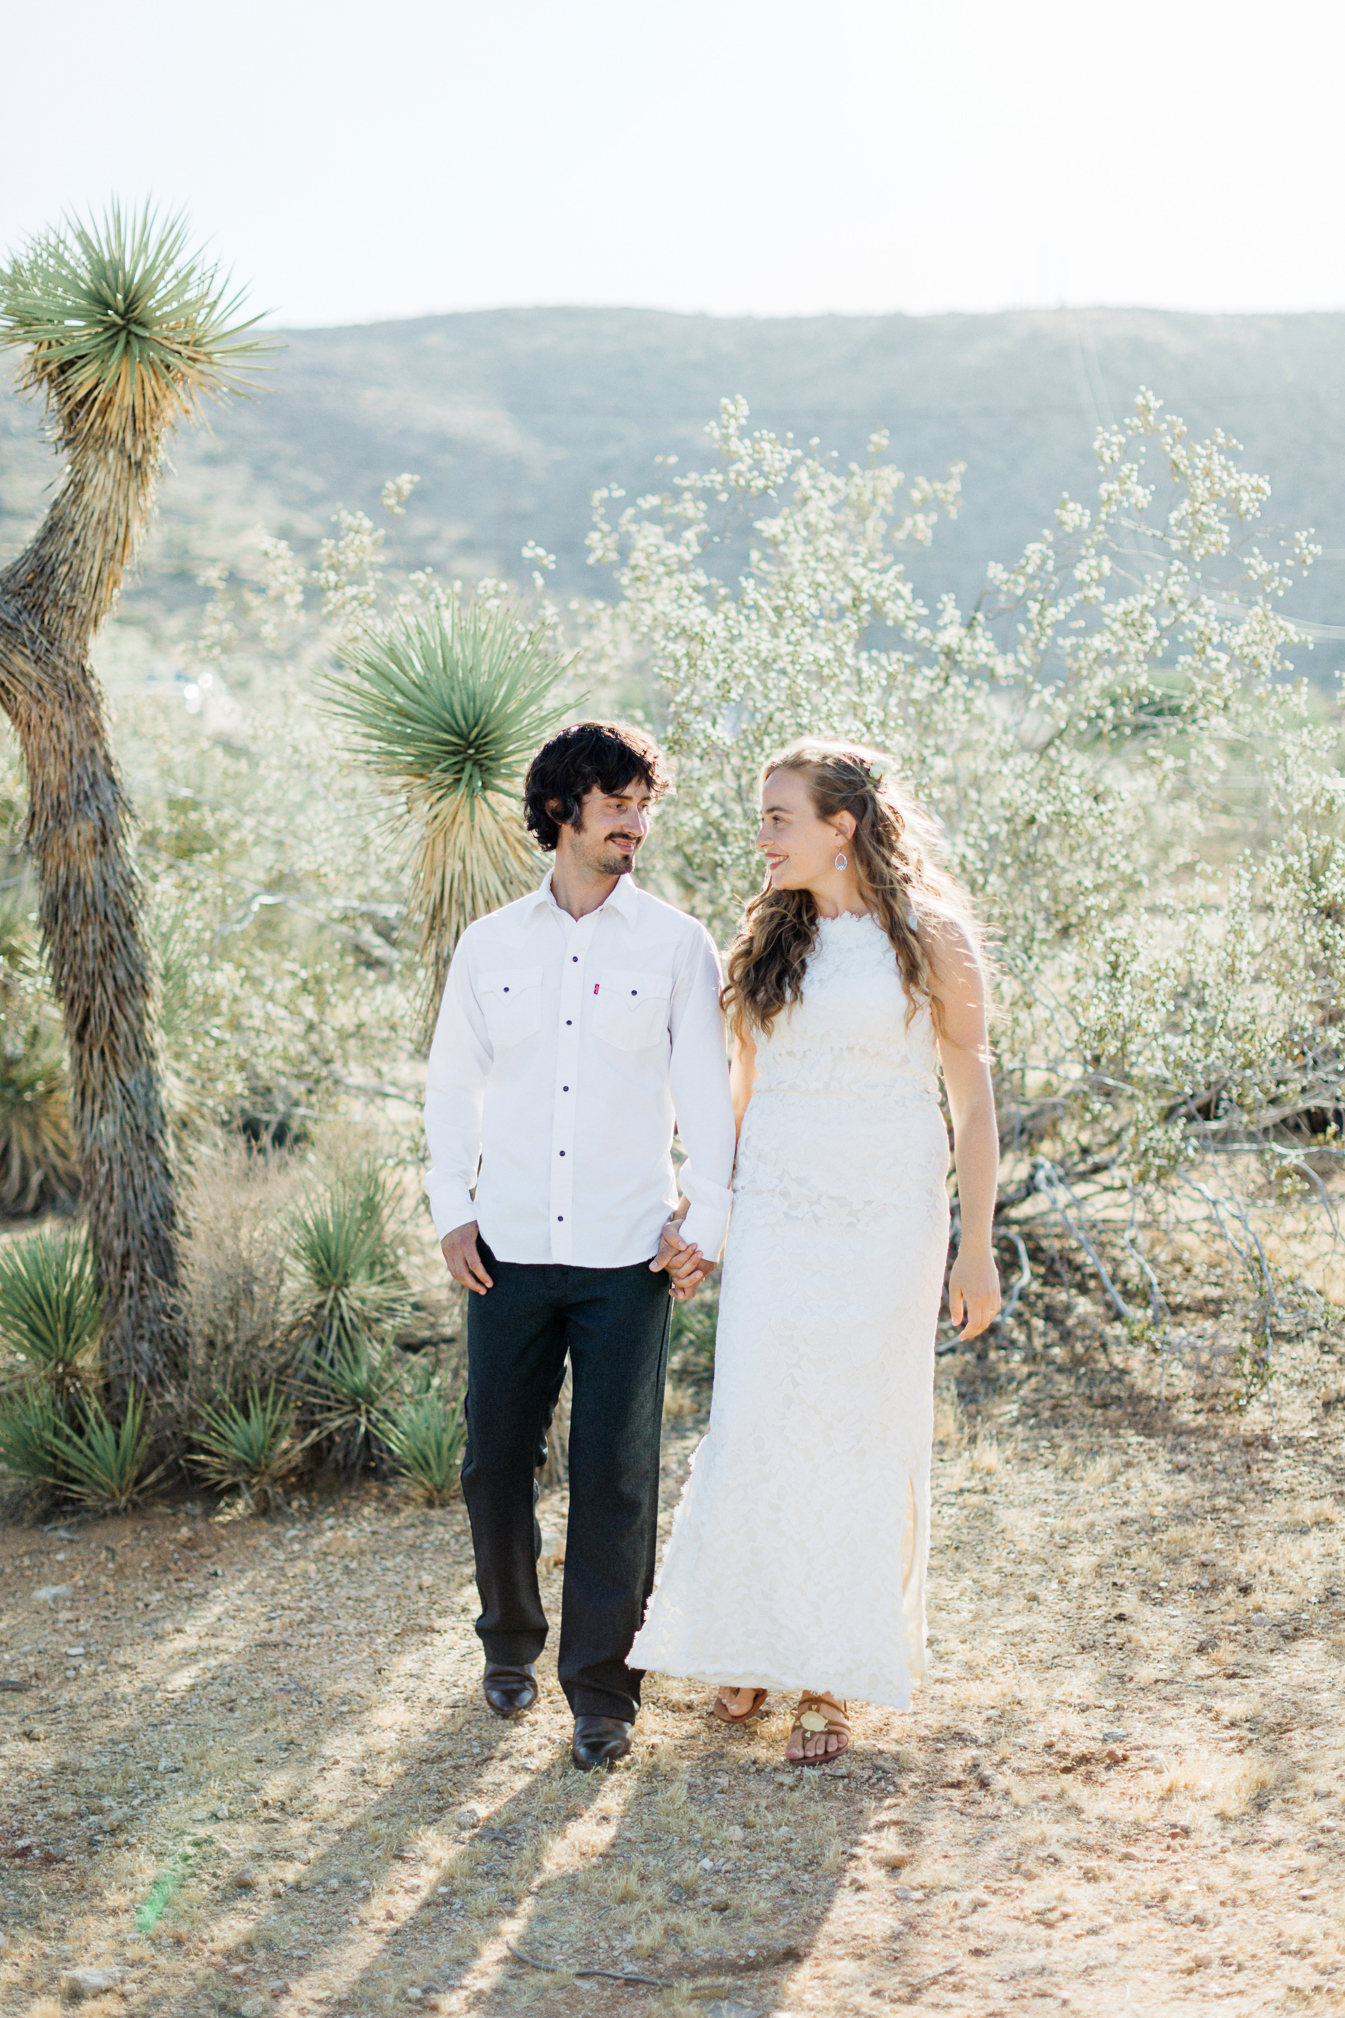 Jim and Melissa dressed for their wedding standing by a Joshua Tree